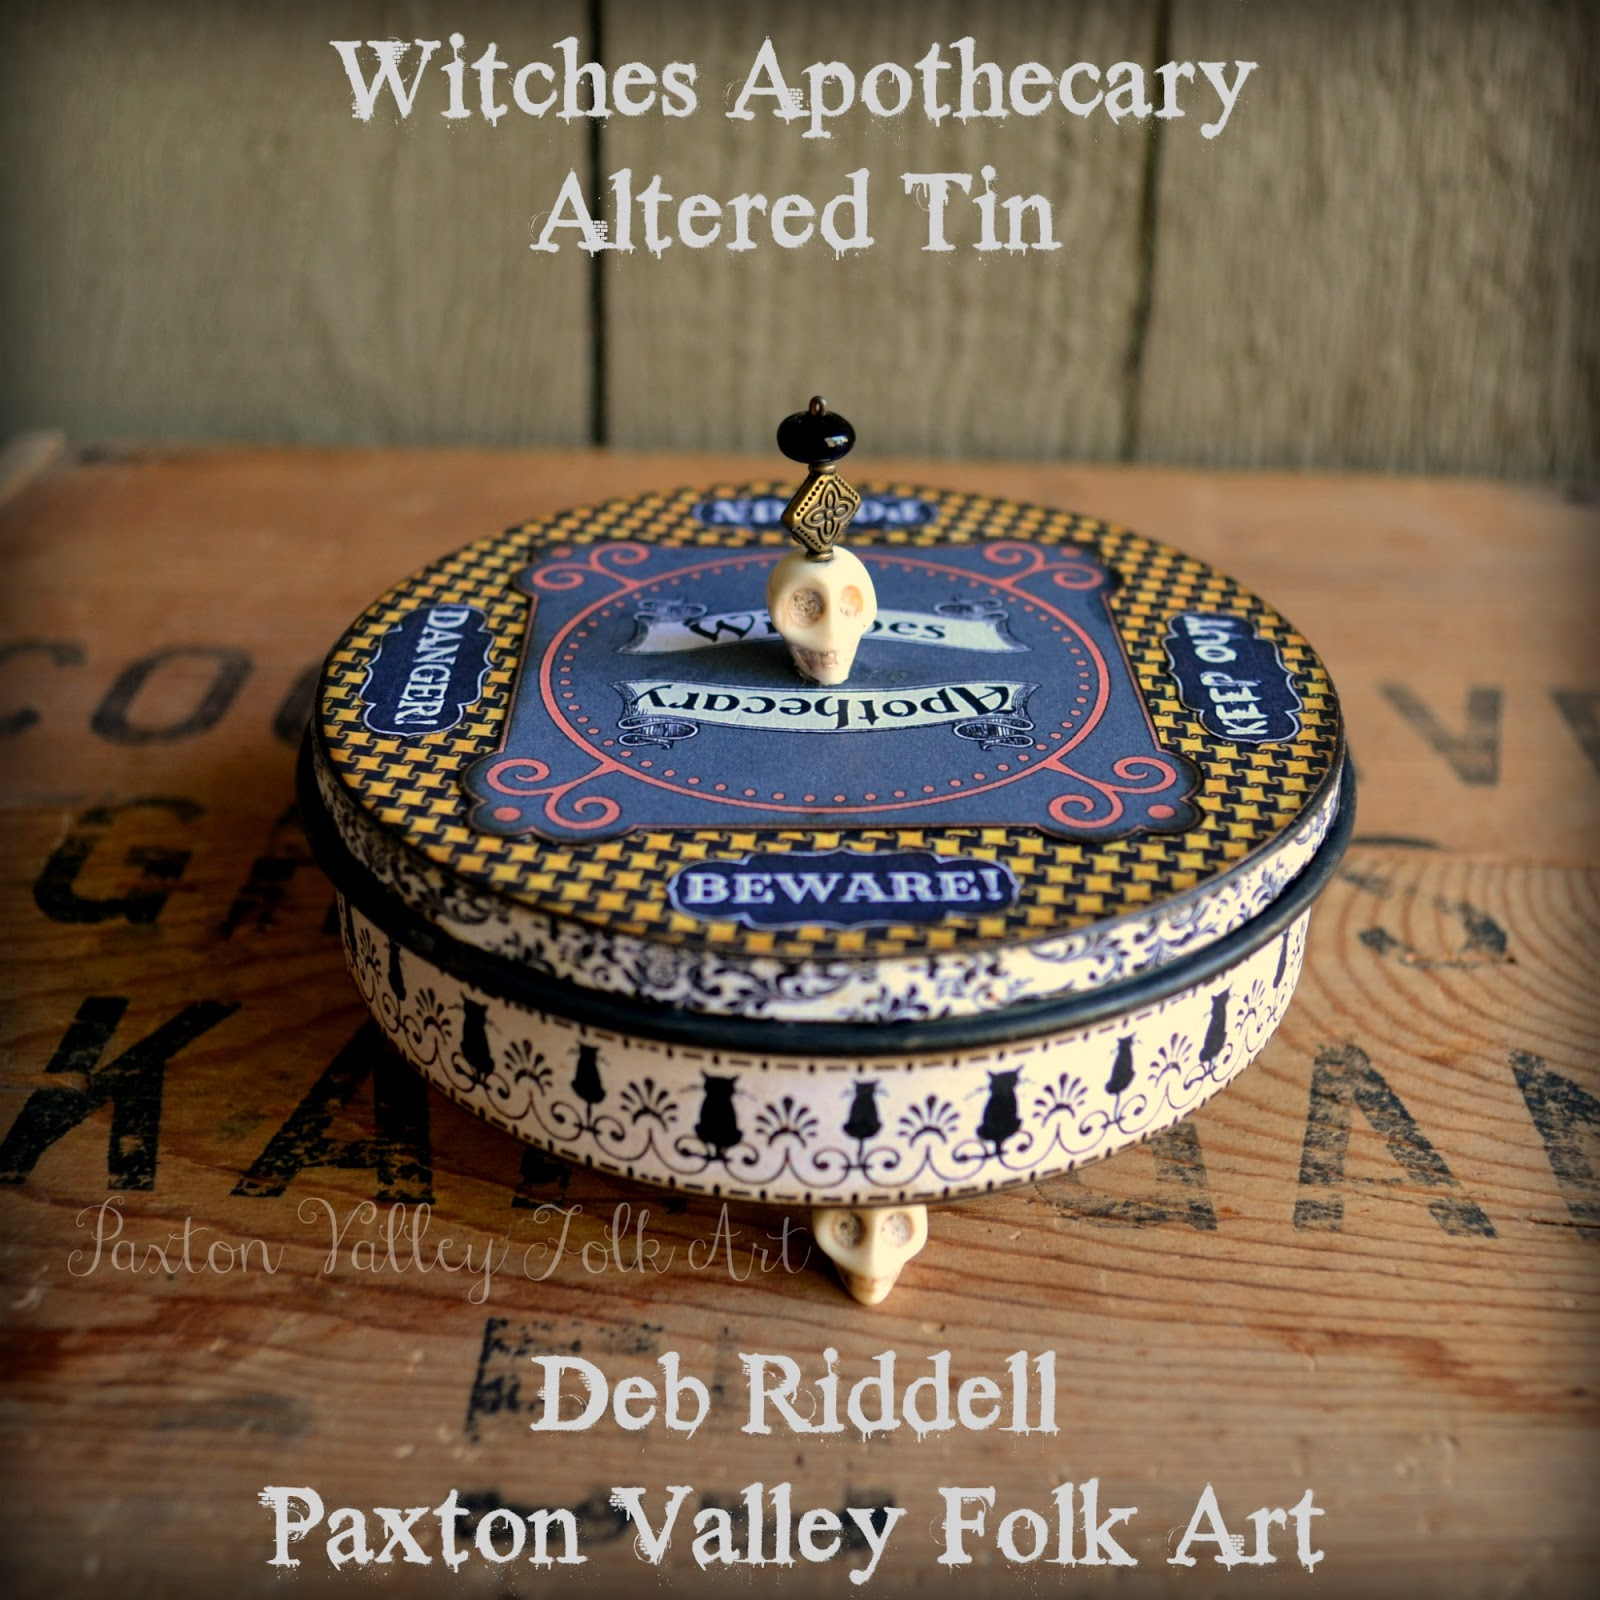 Deb Riddell Designs: Witches Apothecary Altered Tin